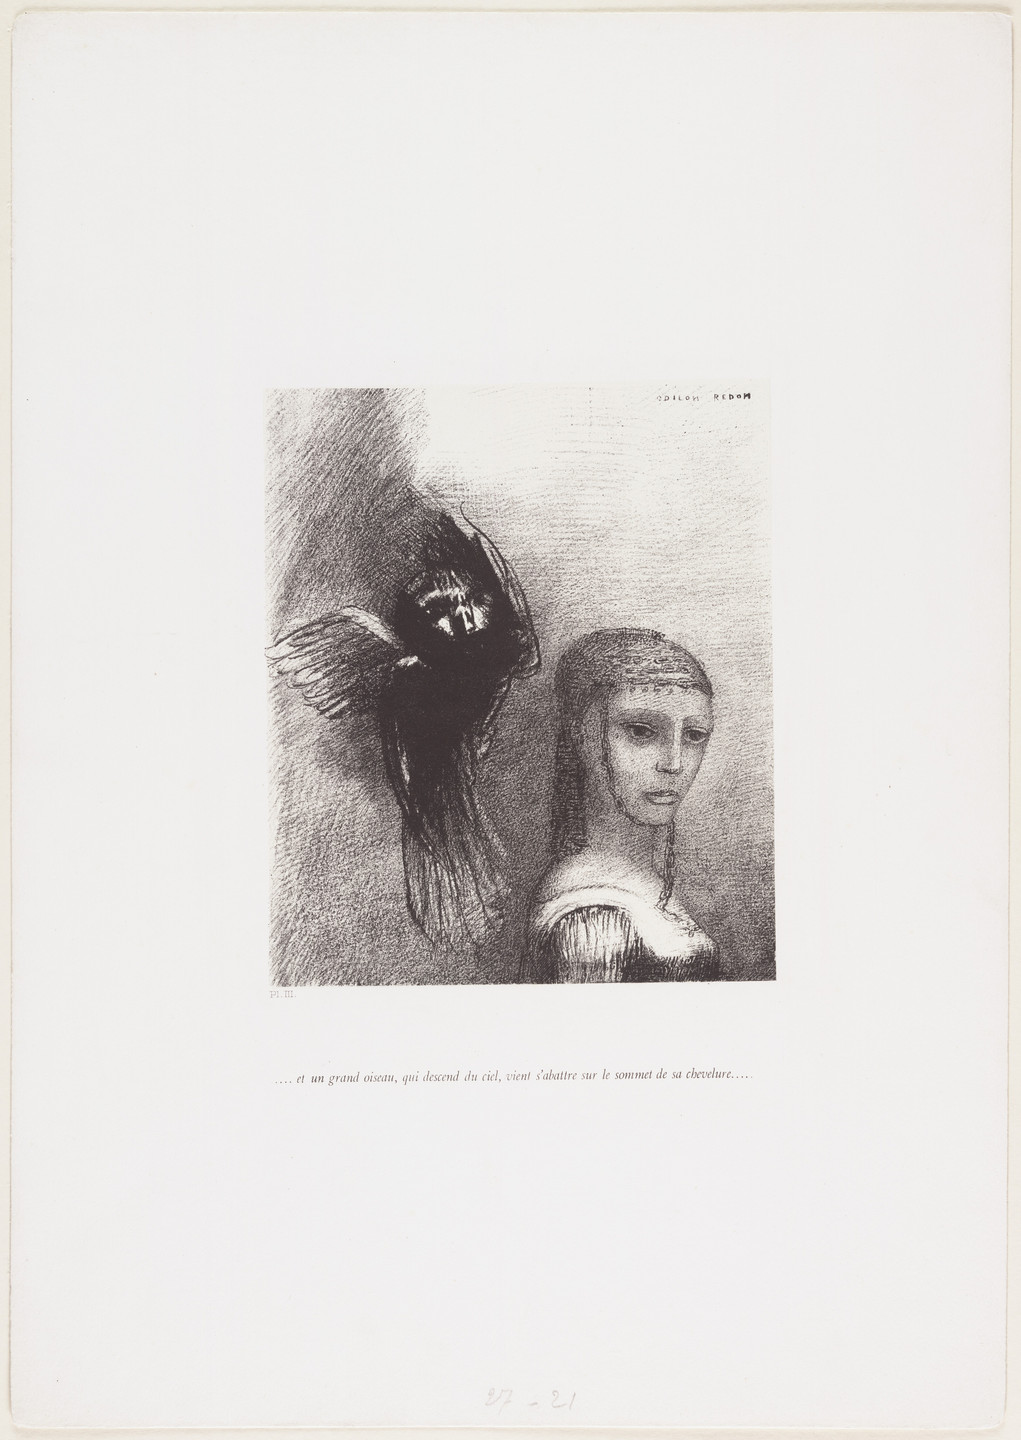 Odilon Redon. _. . . And a Large Bird, Descending from the Sky, Hurled Itself Against the Topmost Point of Her Hair . . . _ ( . . . Et un grand oiseau qui descend du ciel, vient s'abattre sur le sommet de sa chevelure . . . ) from The Tempation of Saint Anthony (La Tentation de Saint-Antoine). 1888